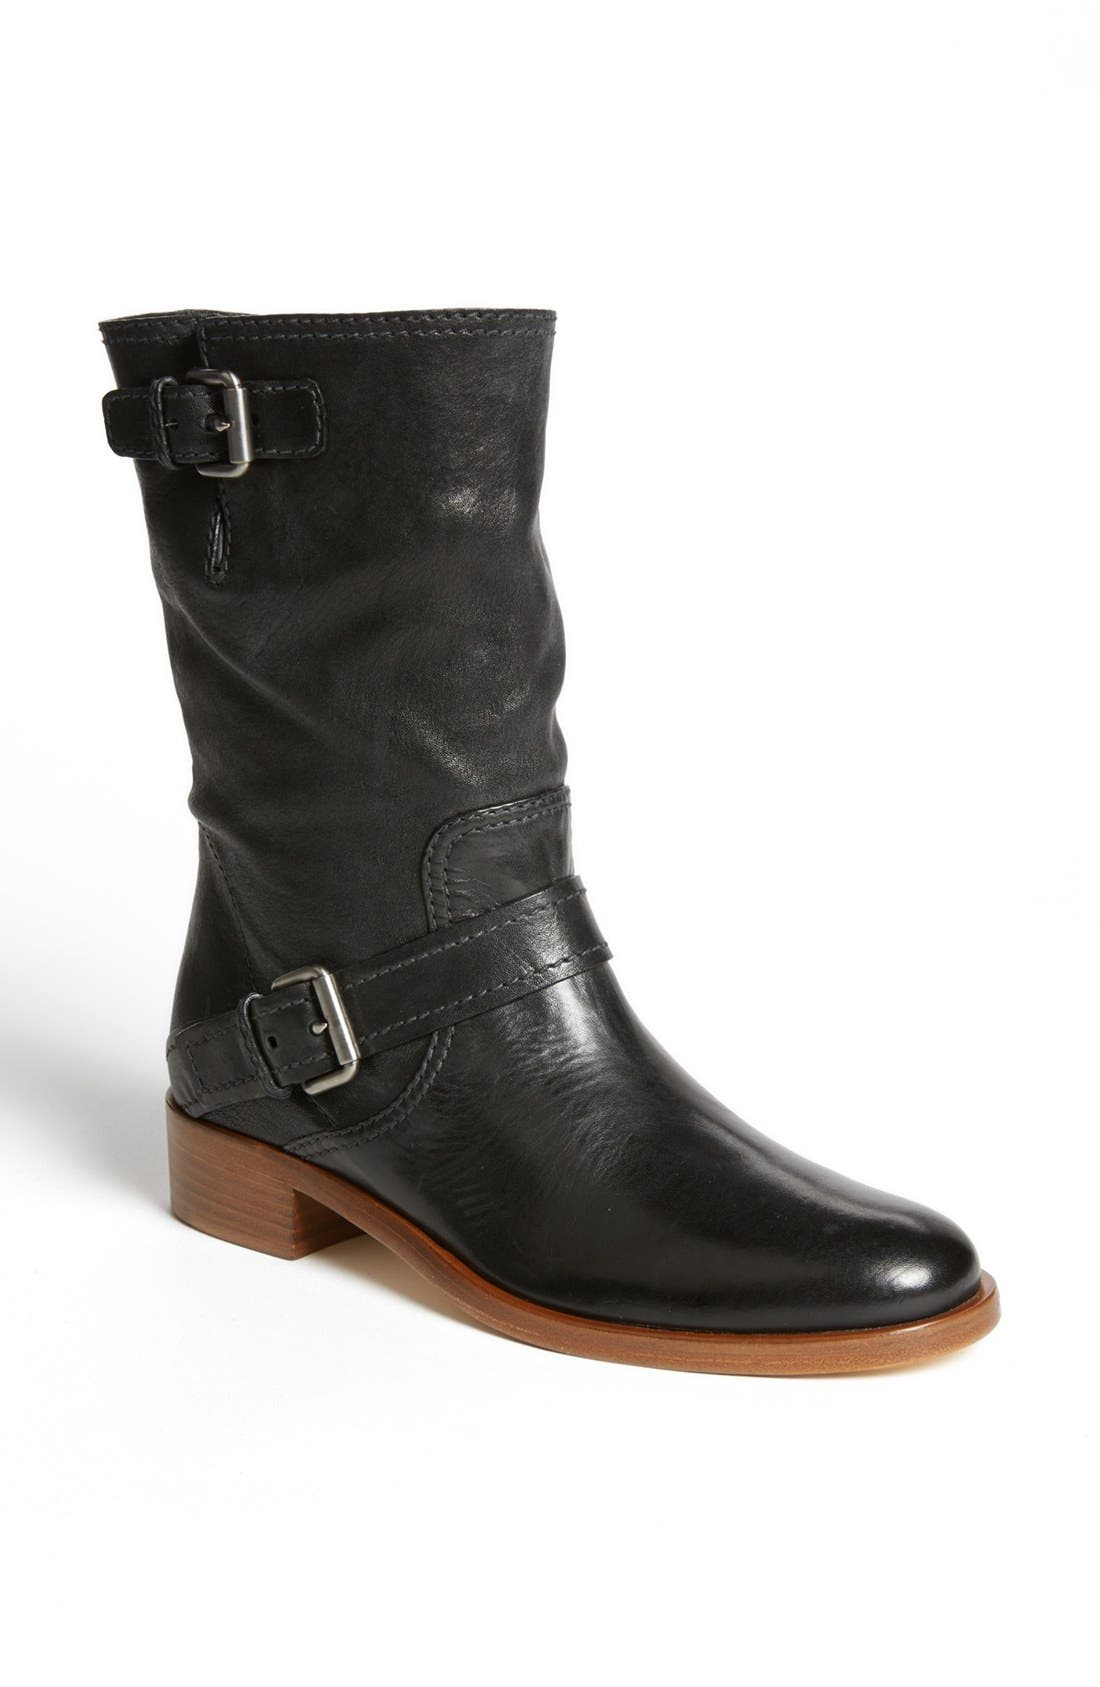 Alternate Image 1 Selected - Miu Miu Double Buckle Short Boot